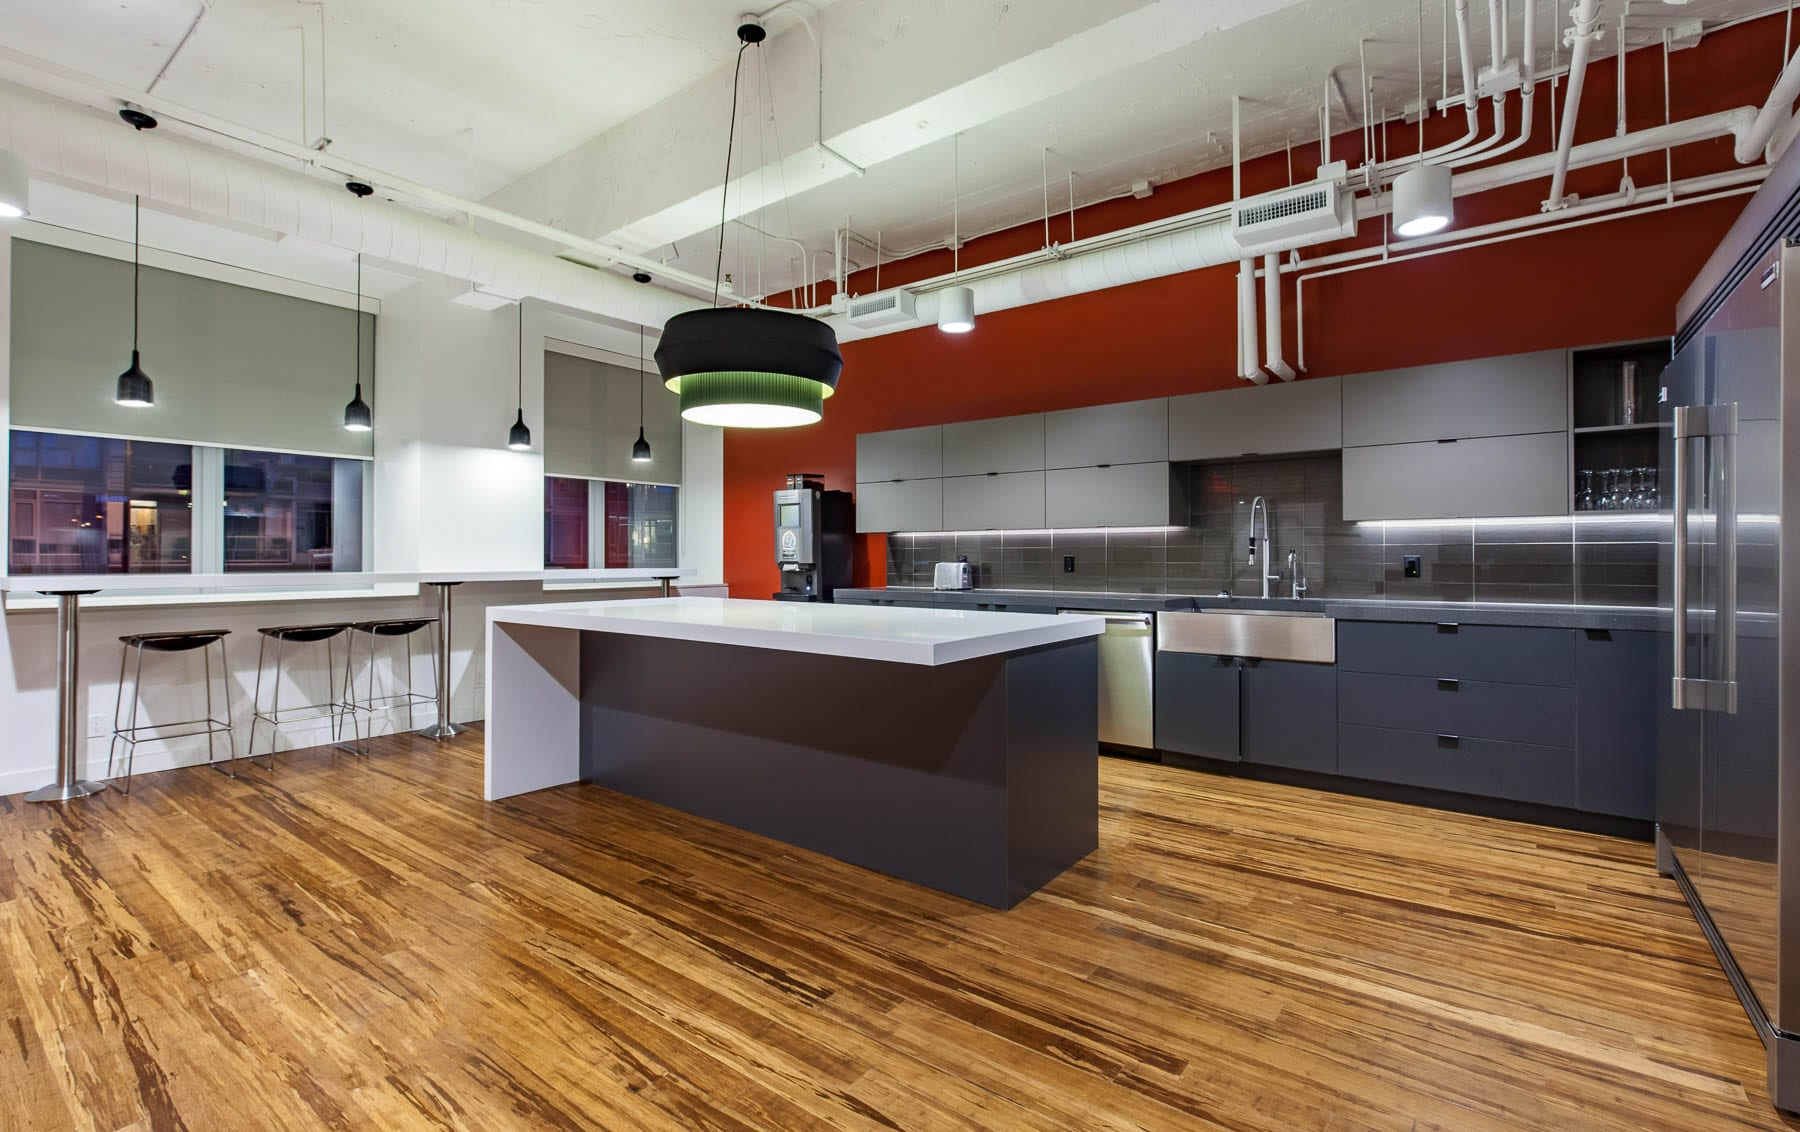 MIABC staff kitchen - modern, contemporary, exposed ceiling